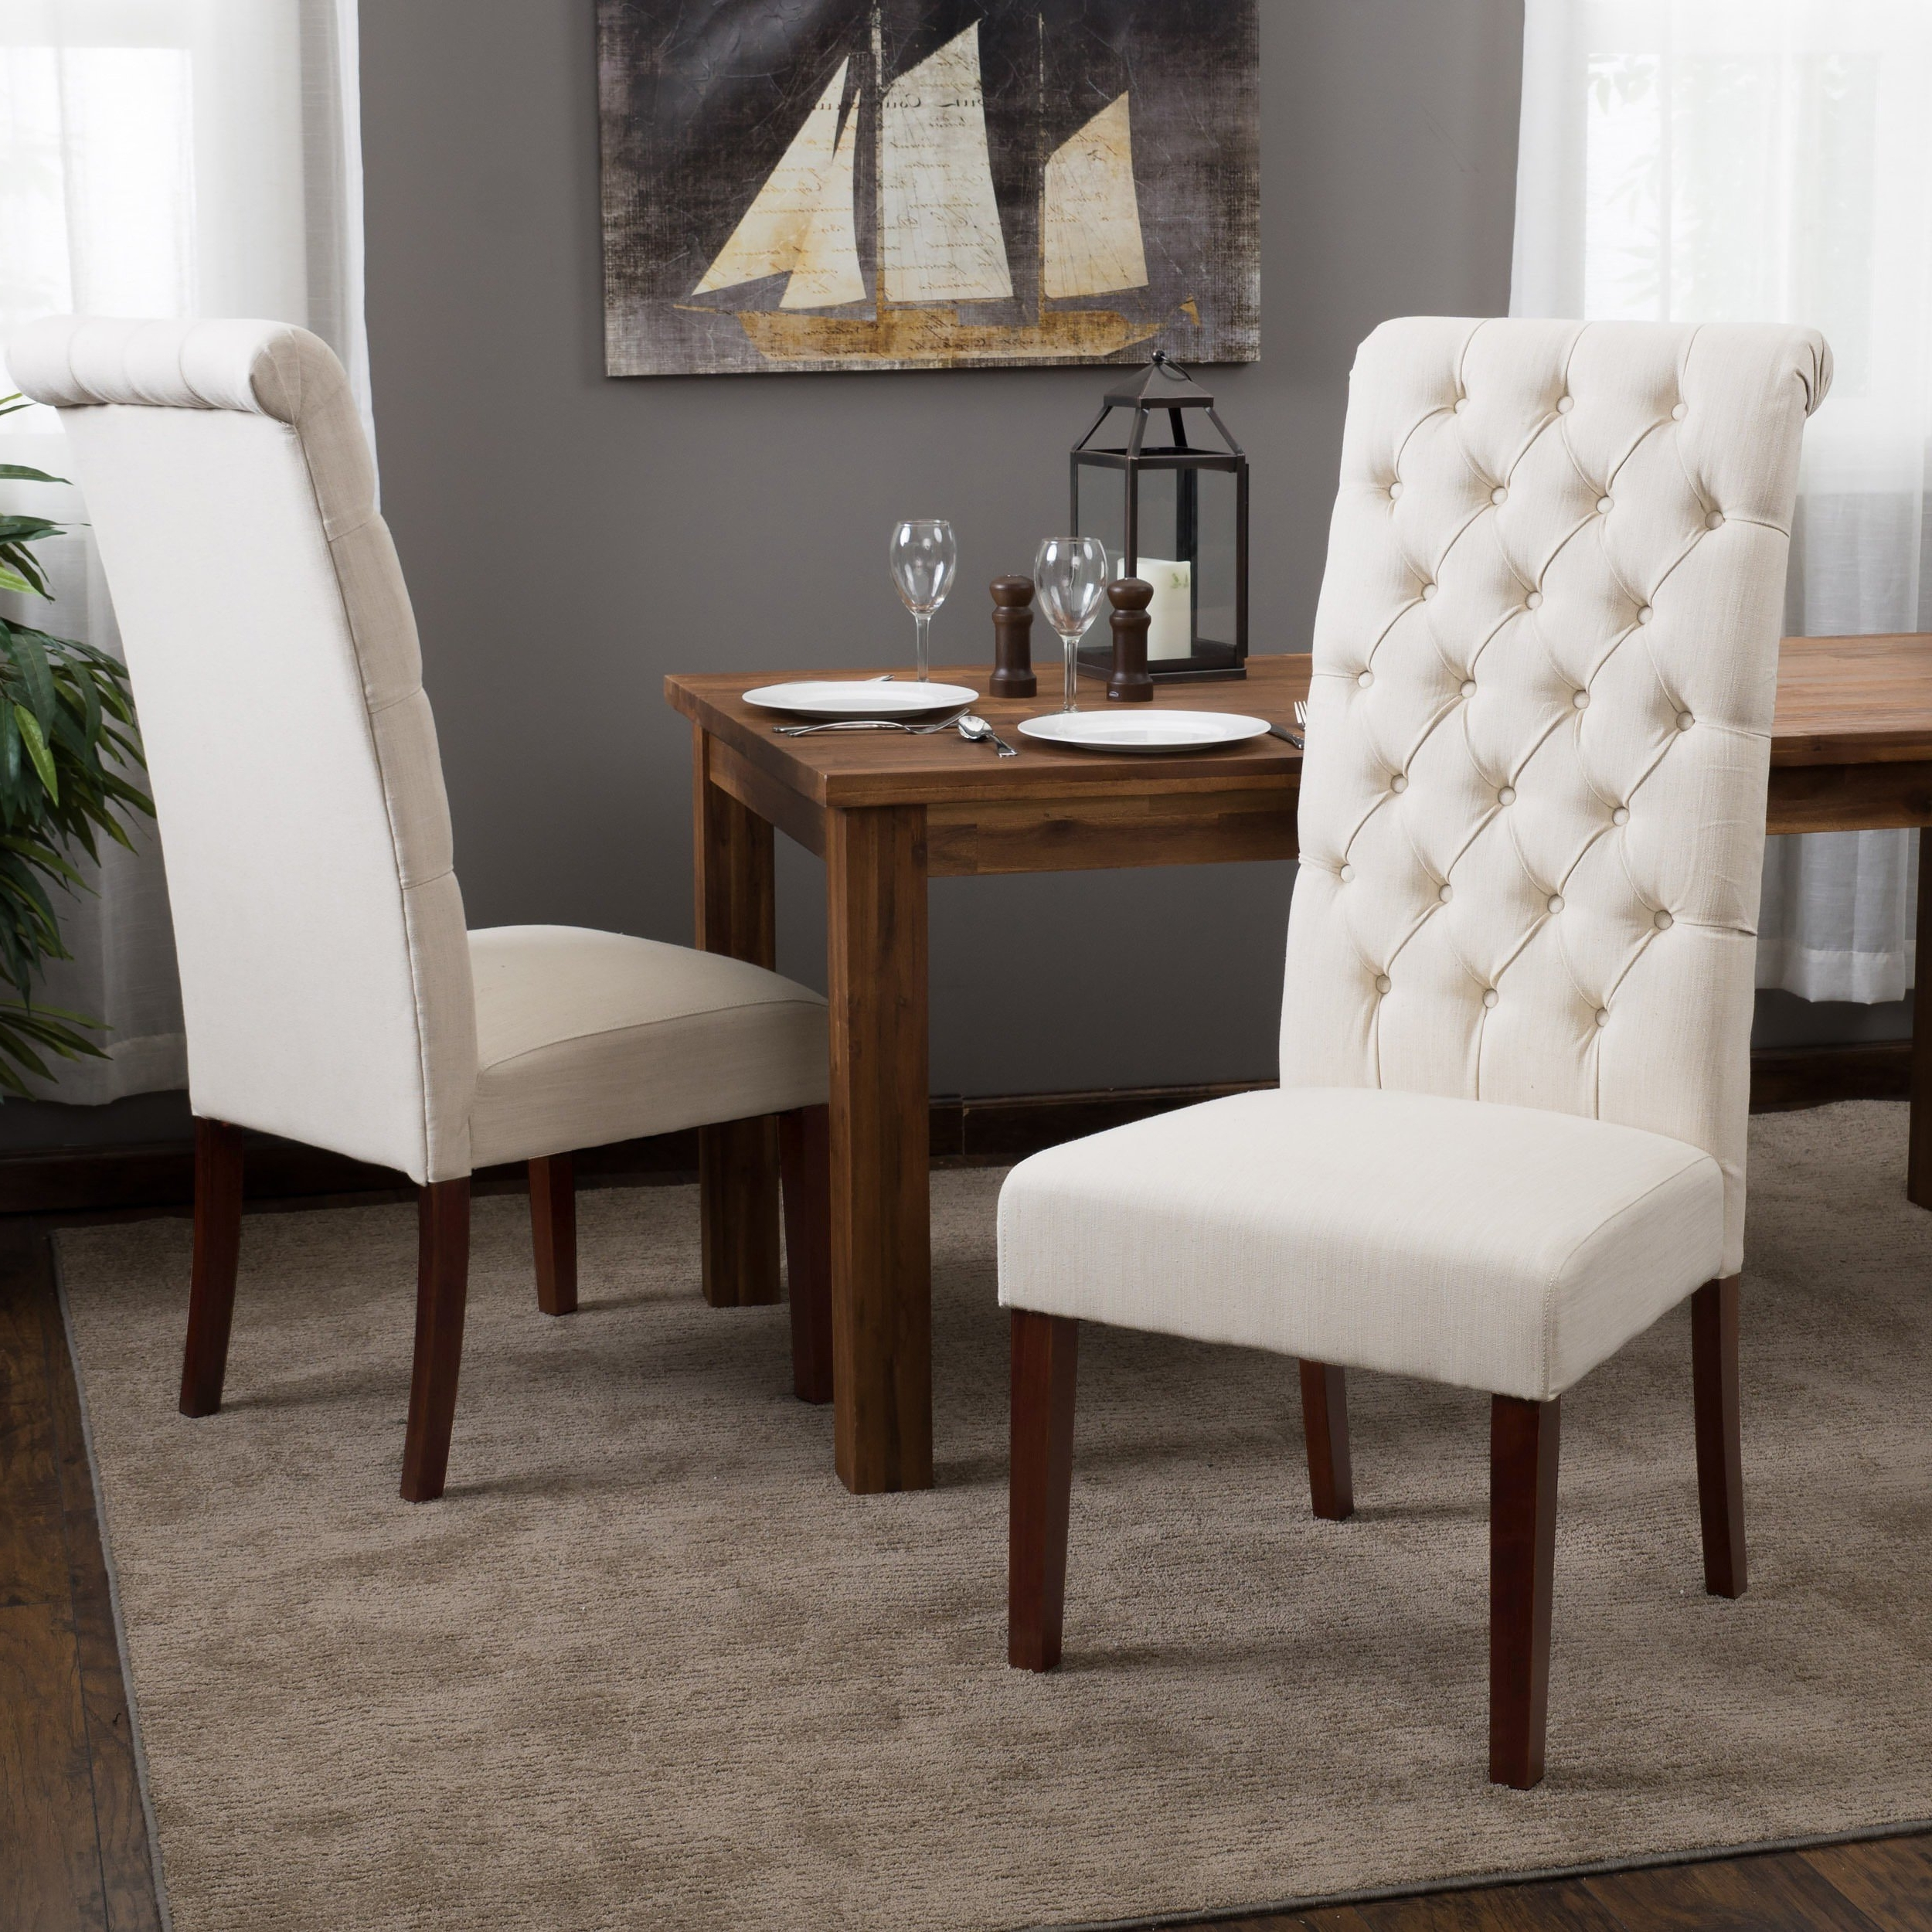 Popular Caira Black 5 Piece Round Dining Sets With Diamond Back Side Chairs Throughout Shop Tall Natural Tufted Fabric Dining Chair (Set Of 2) (View 16 of 25)